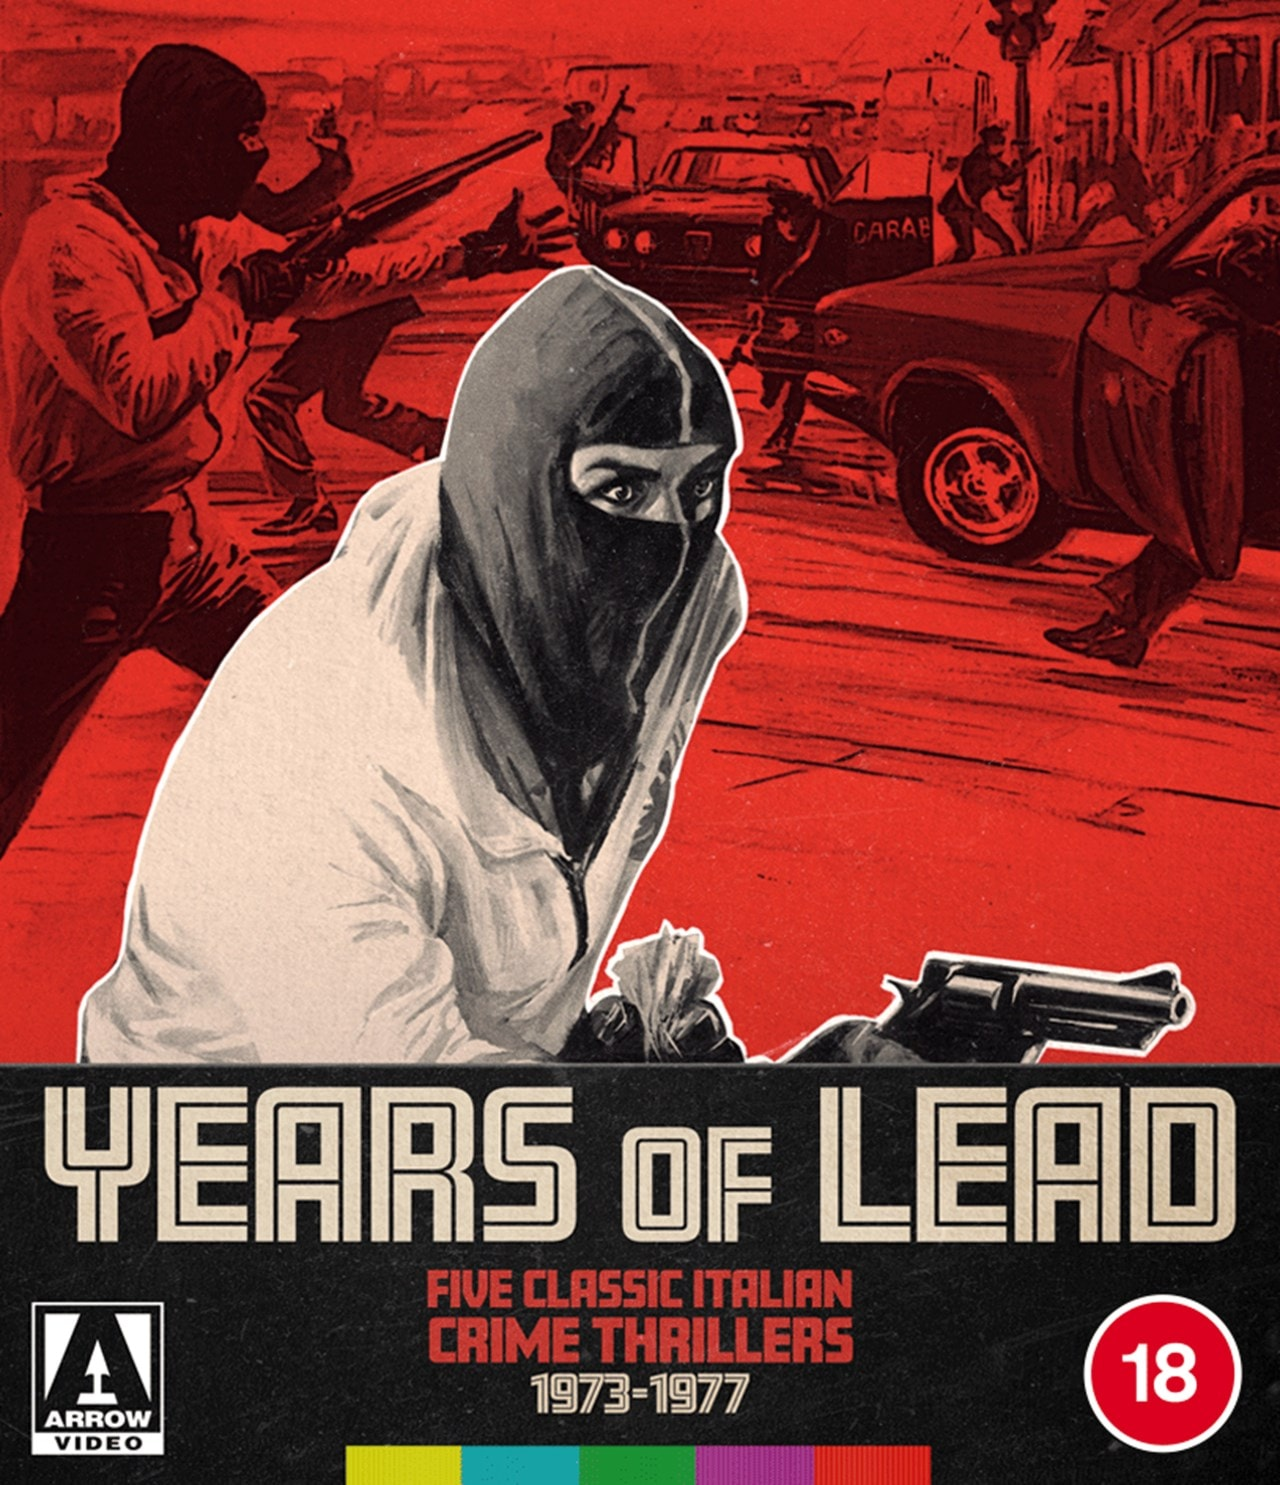 Years of Lead - Five Classic Italian Crime Thrillers 1973-1977 - 1